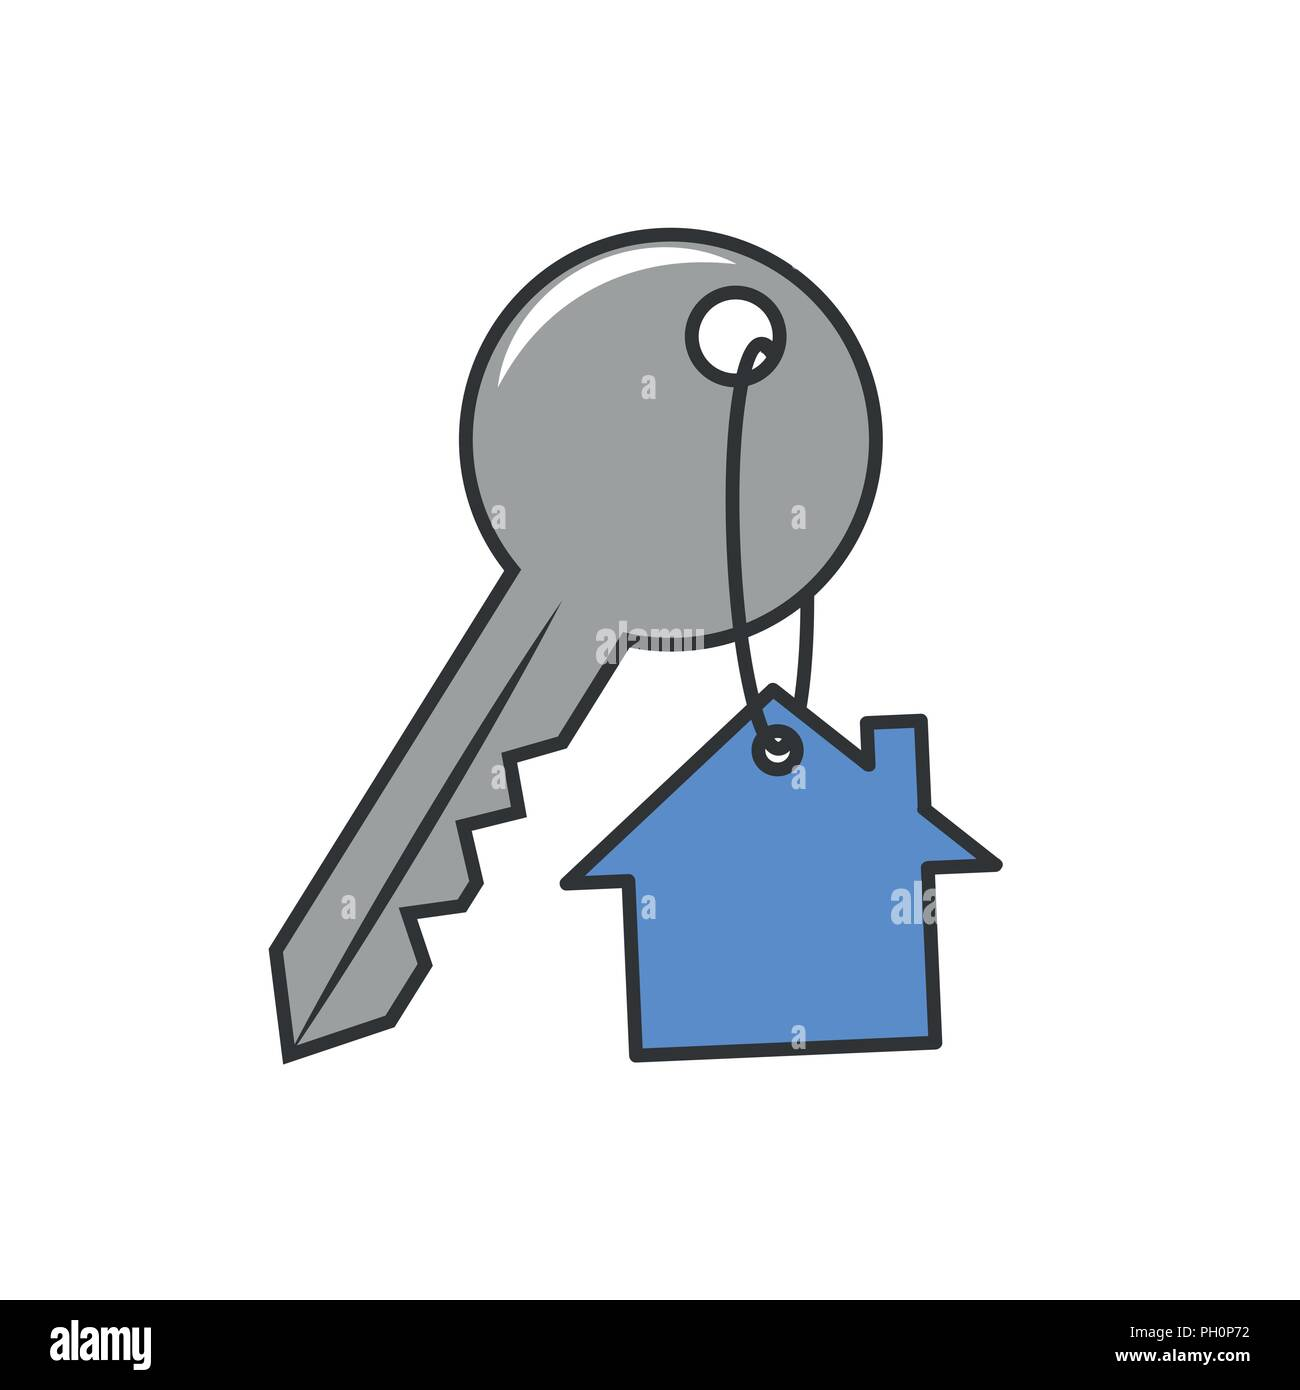 house key with keyring pendant security icon vector illustratione EPS10 - Stock Vector